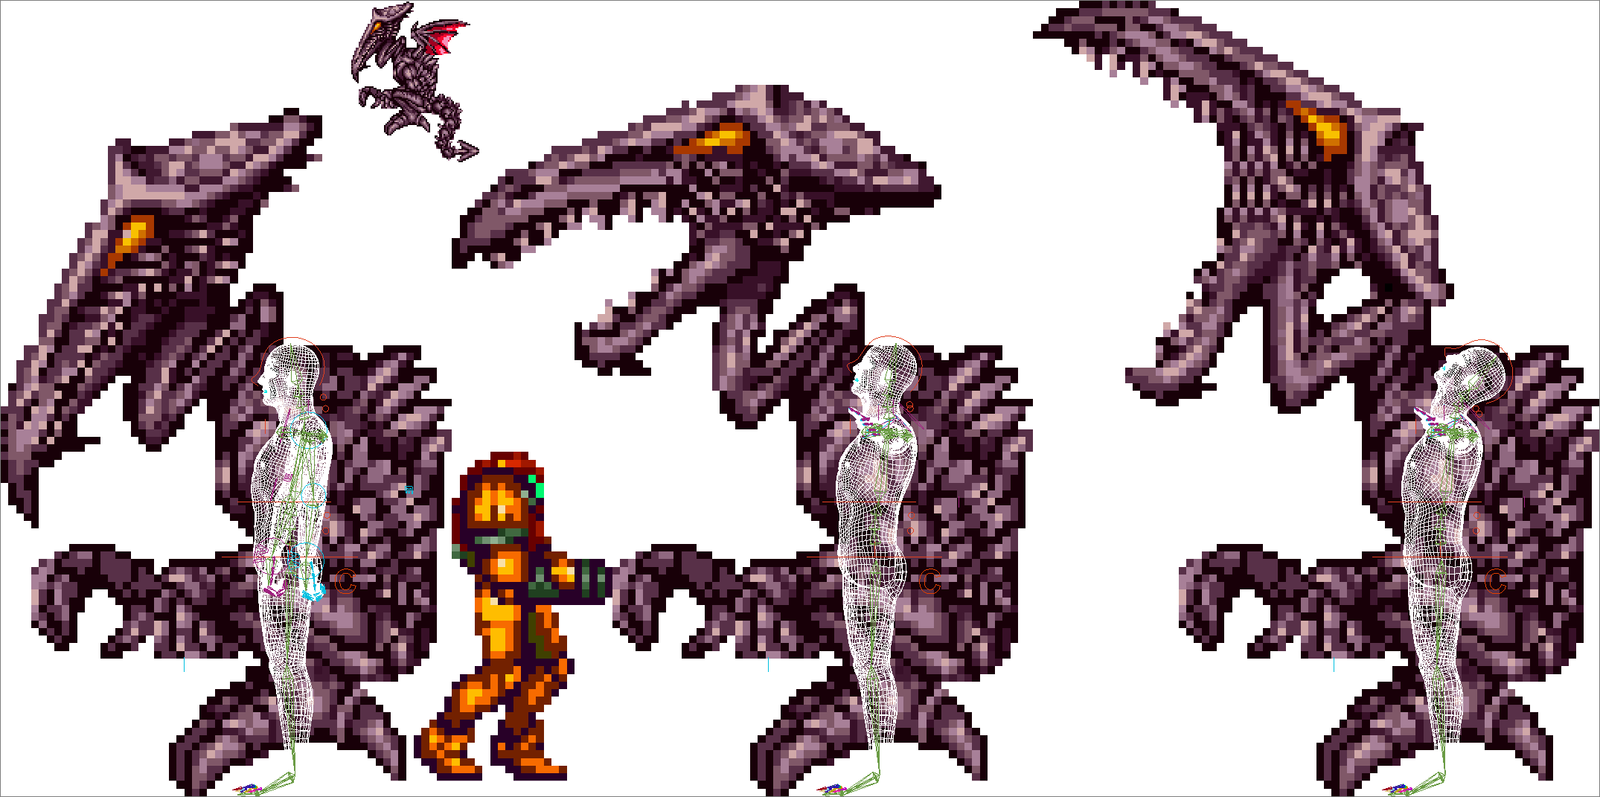 ridley_proportions_study_by_chozoboy-d4d5crx.png